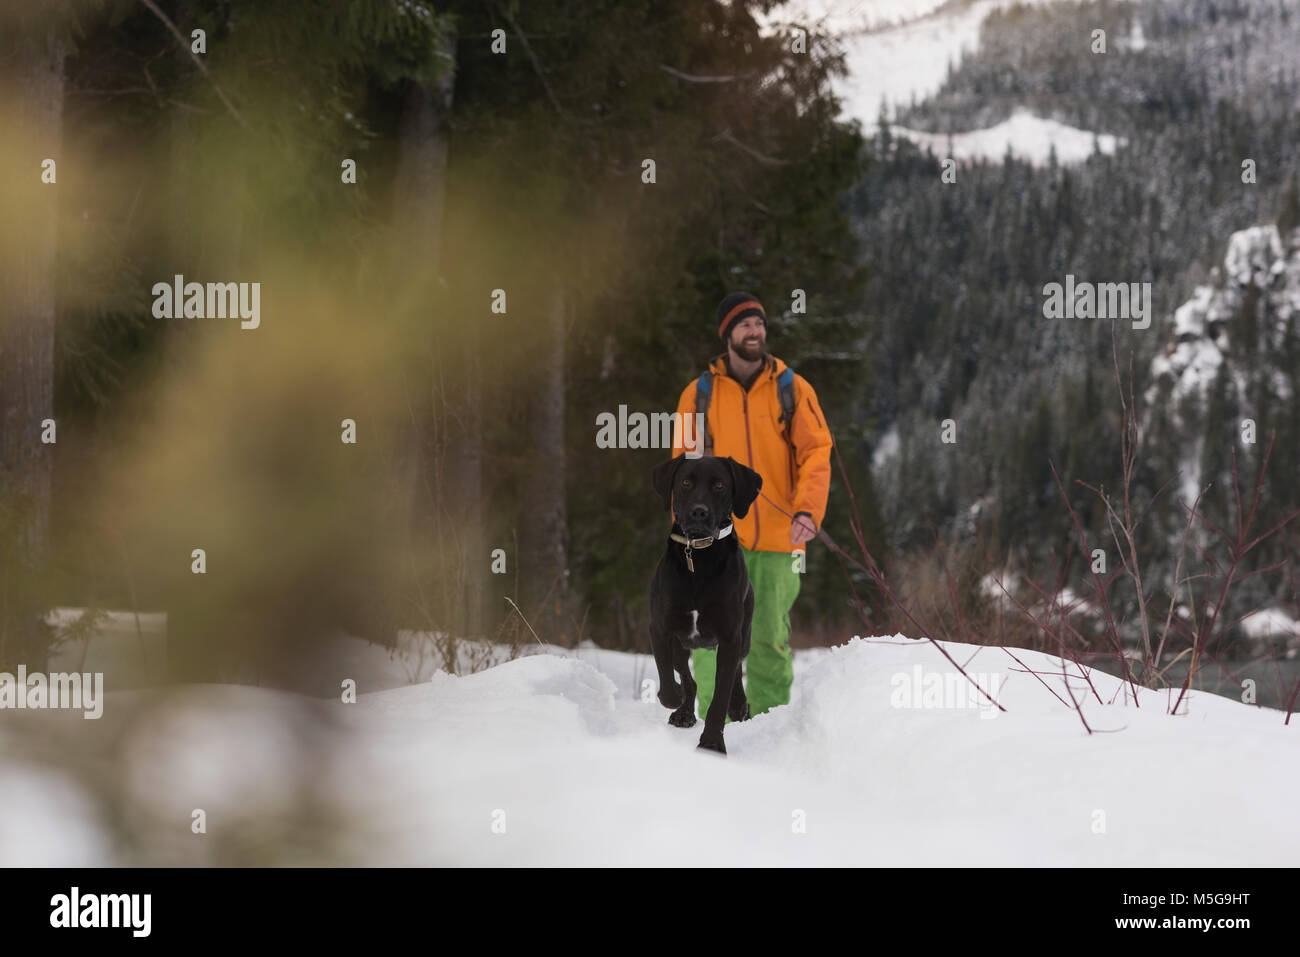 Man walking with his dog on a snowy landscape - Stock Image